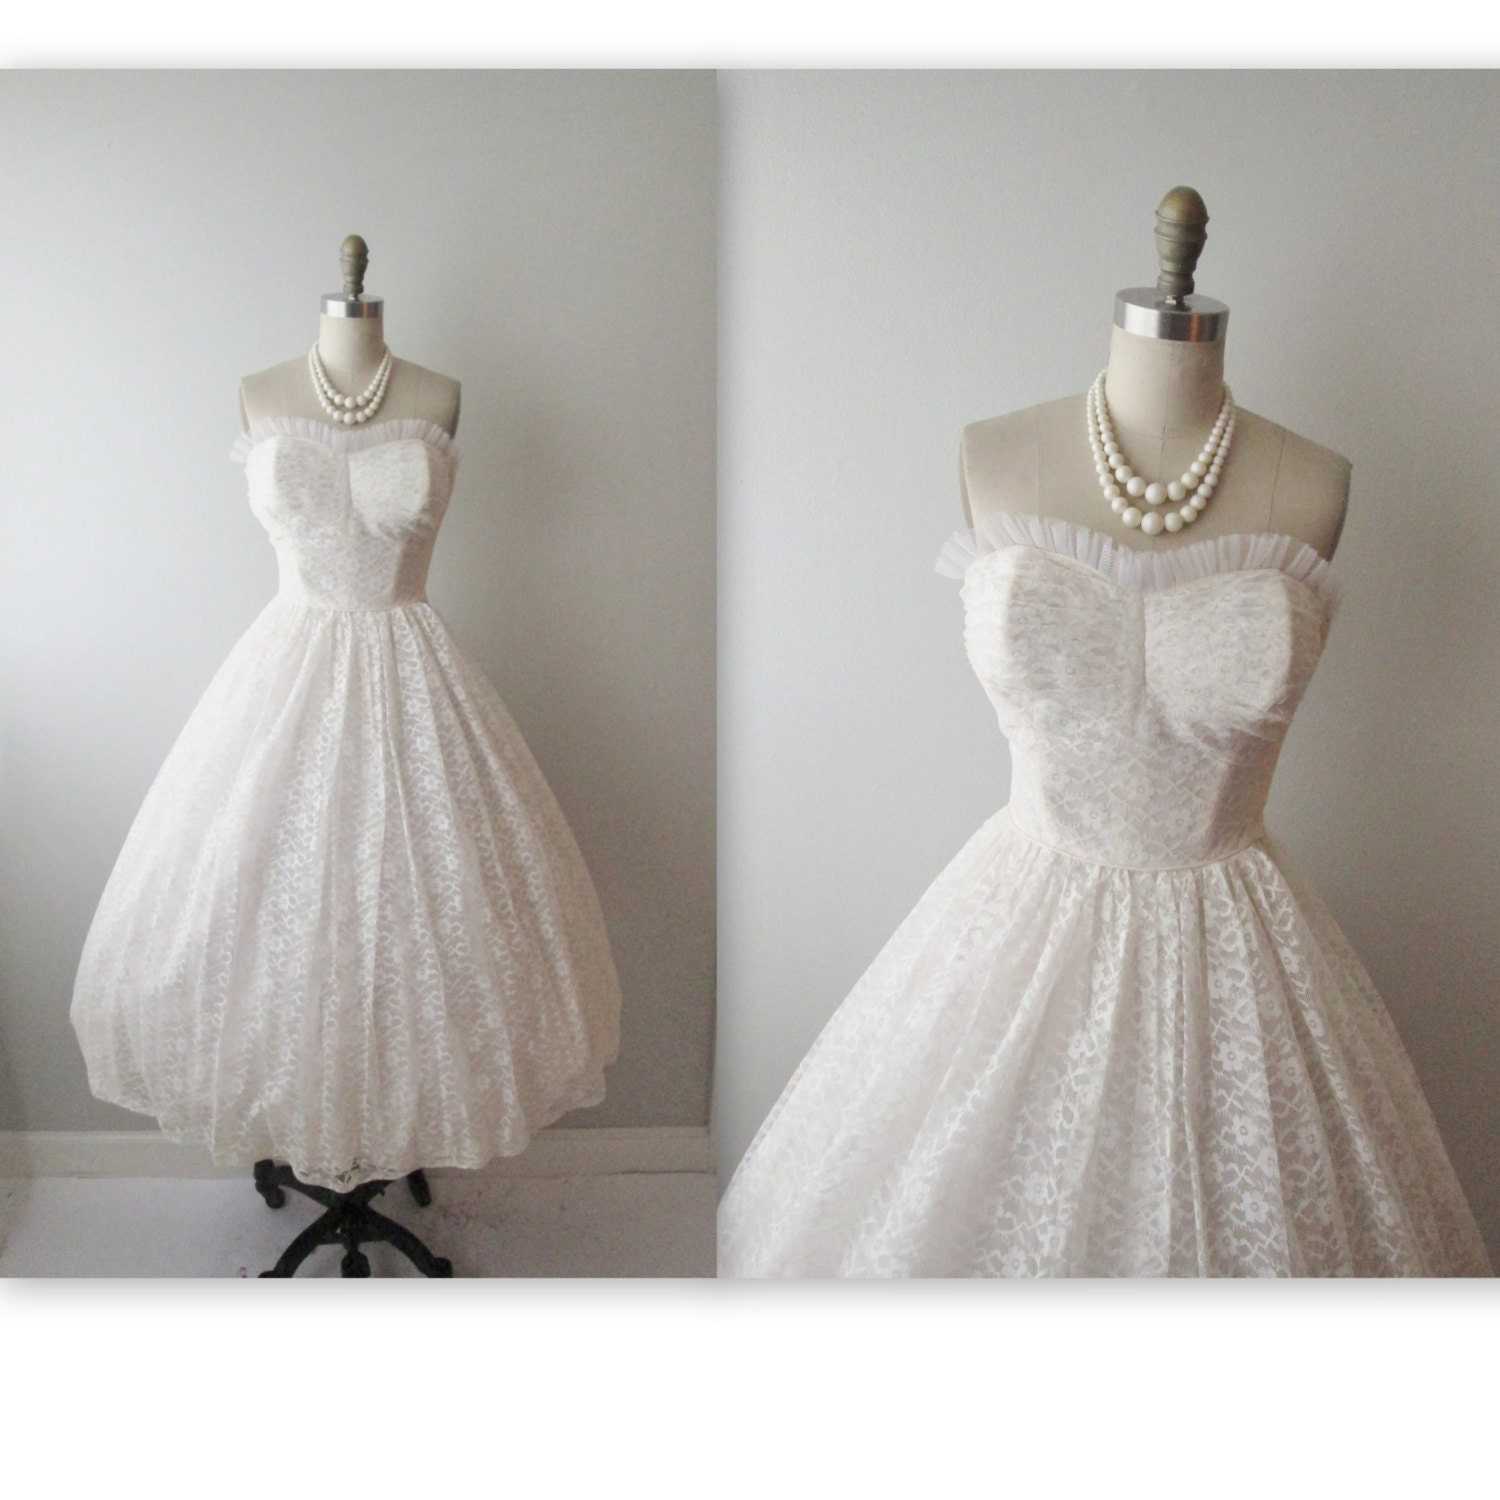 50s Wedding Dress // Vintage 1950s Strapless White Lace